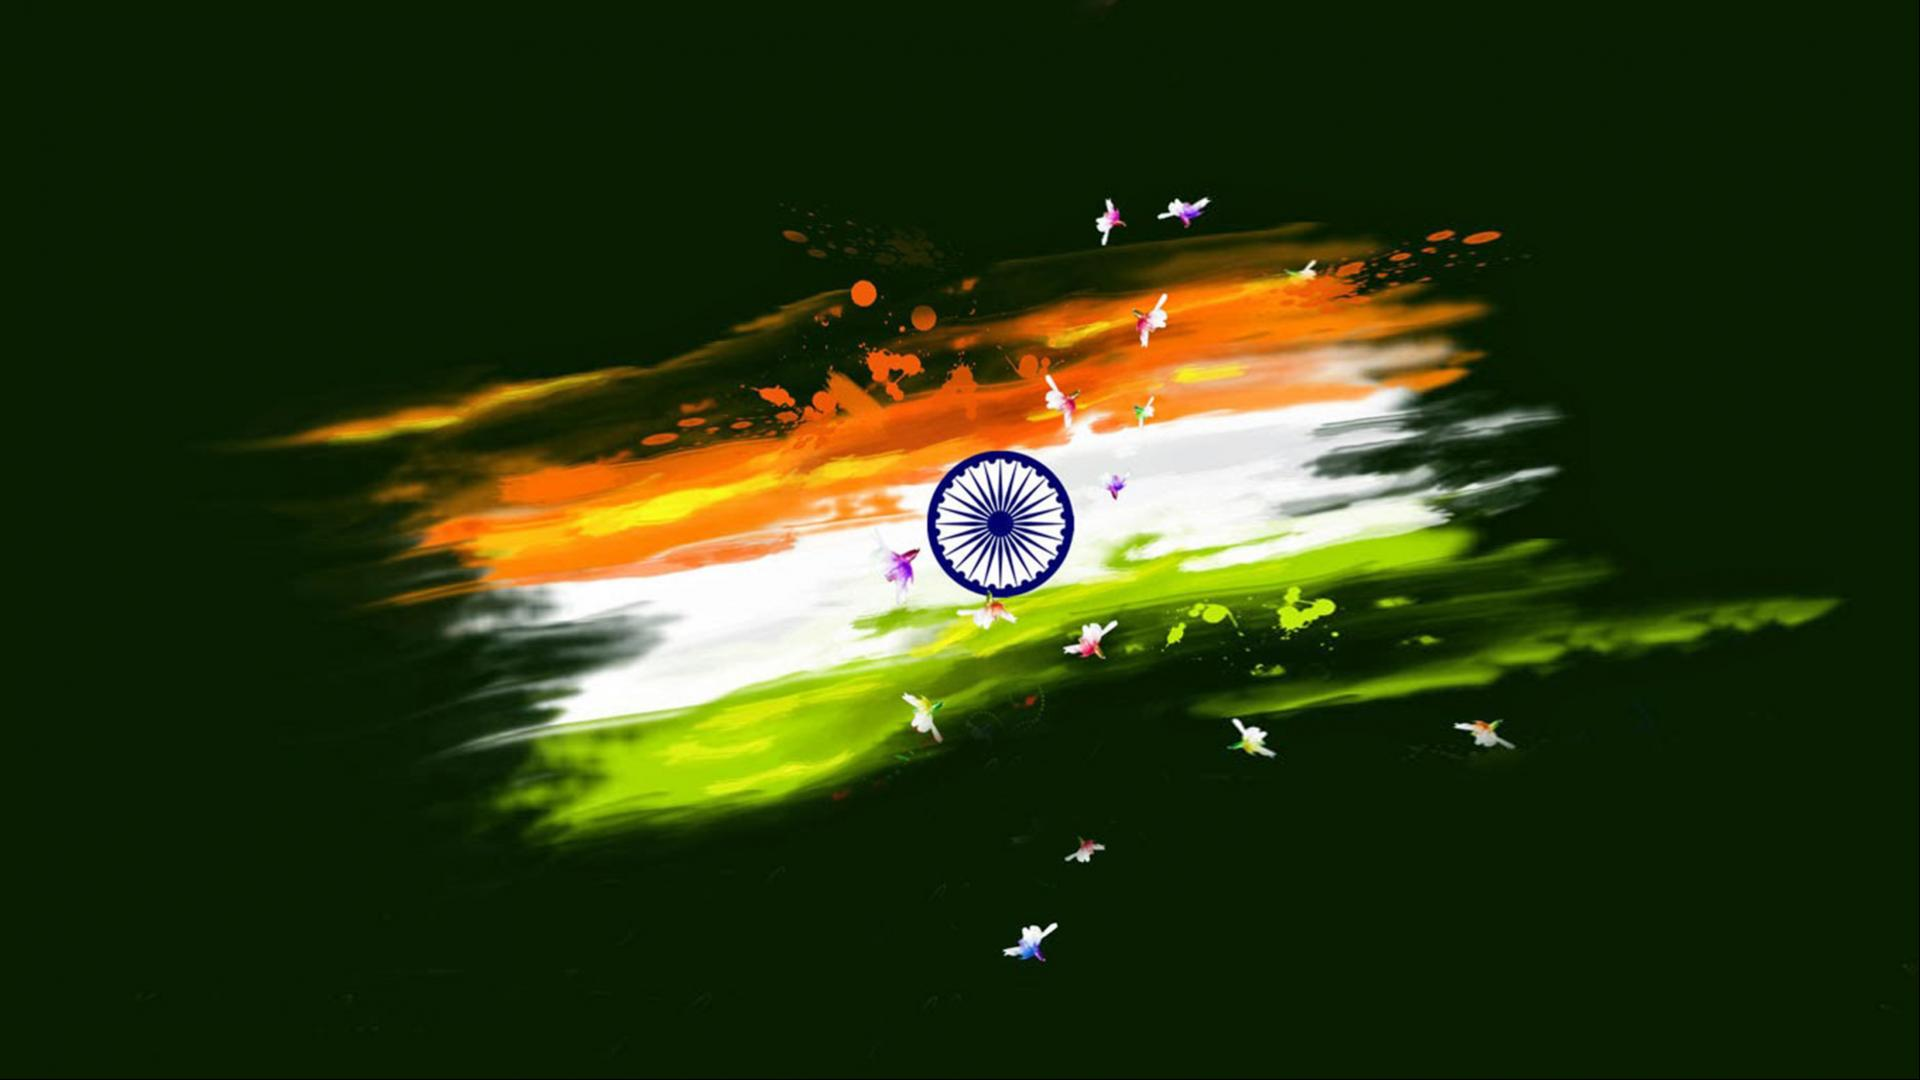 India Flag Hd 1920 X 1080: Abstract Paint India Flag For Republic Day And